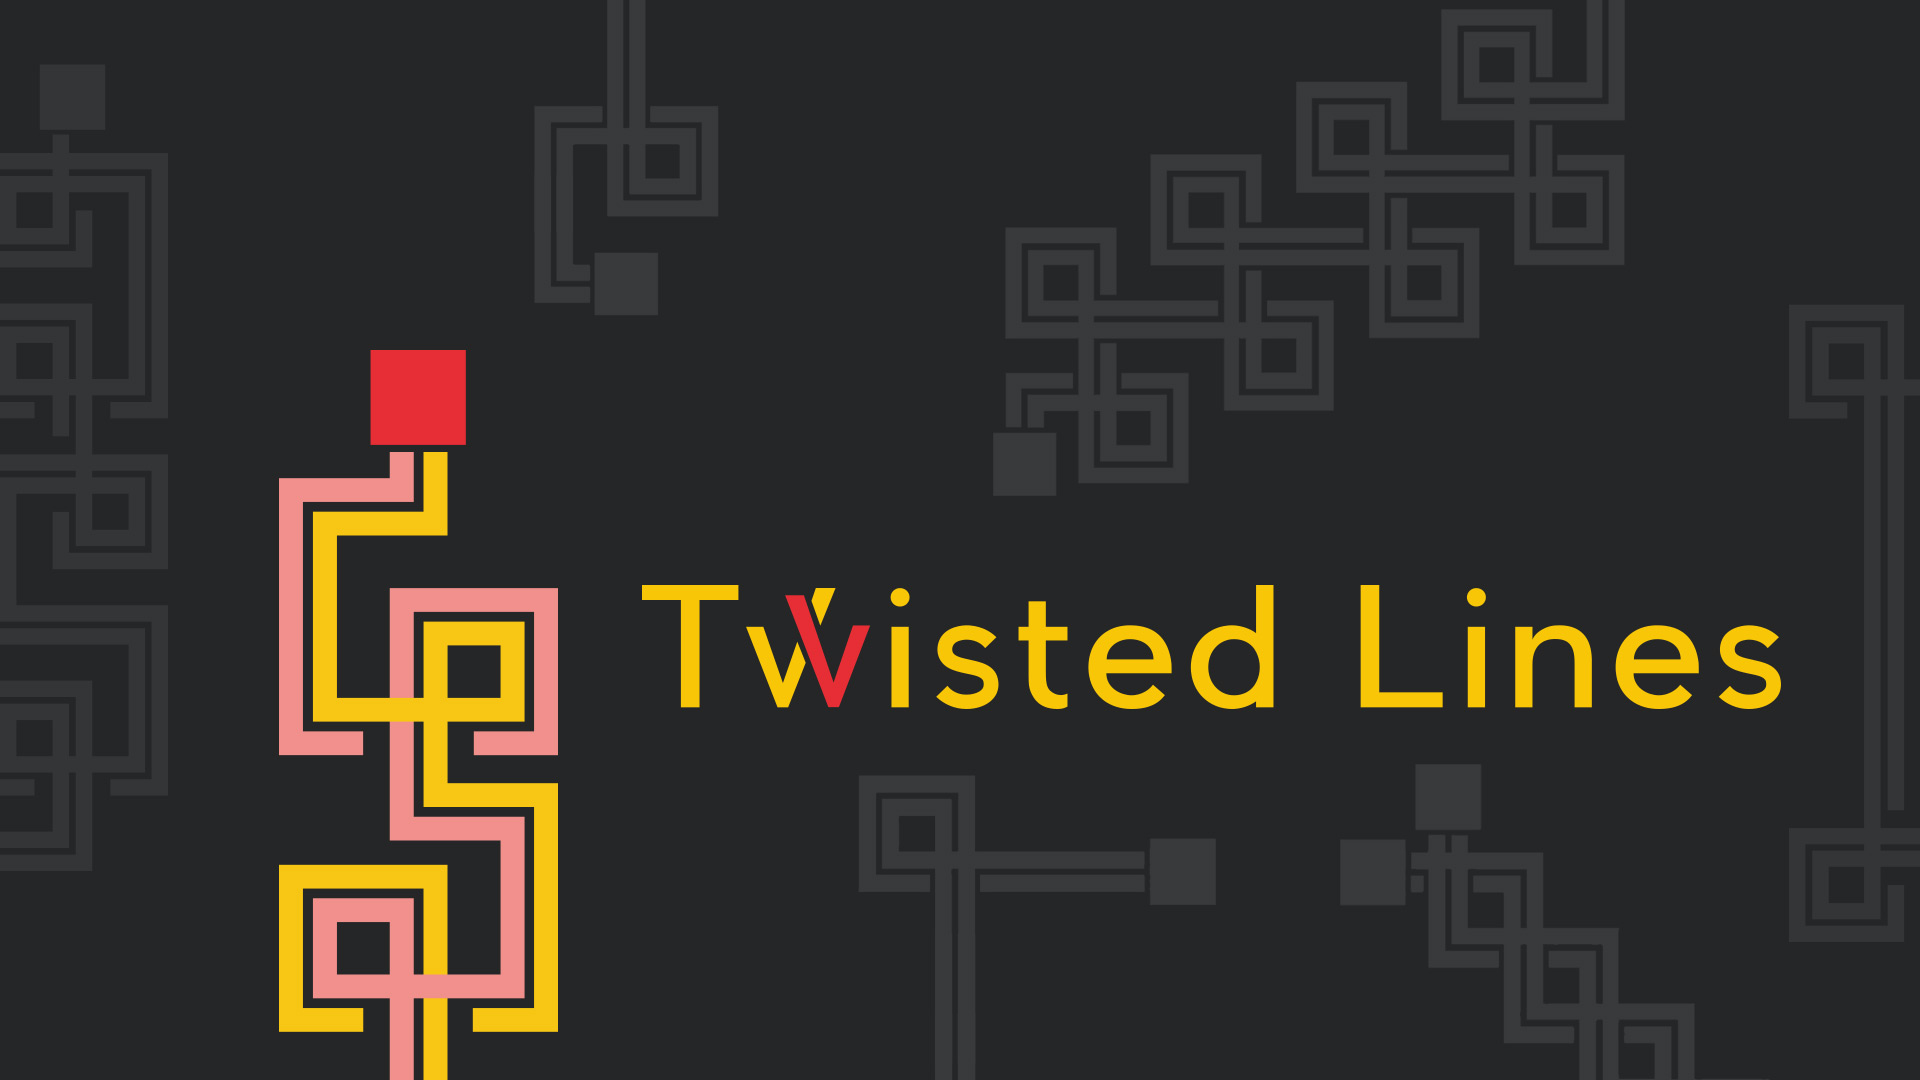 twisted_lines_banner_16-9_II.png